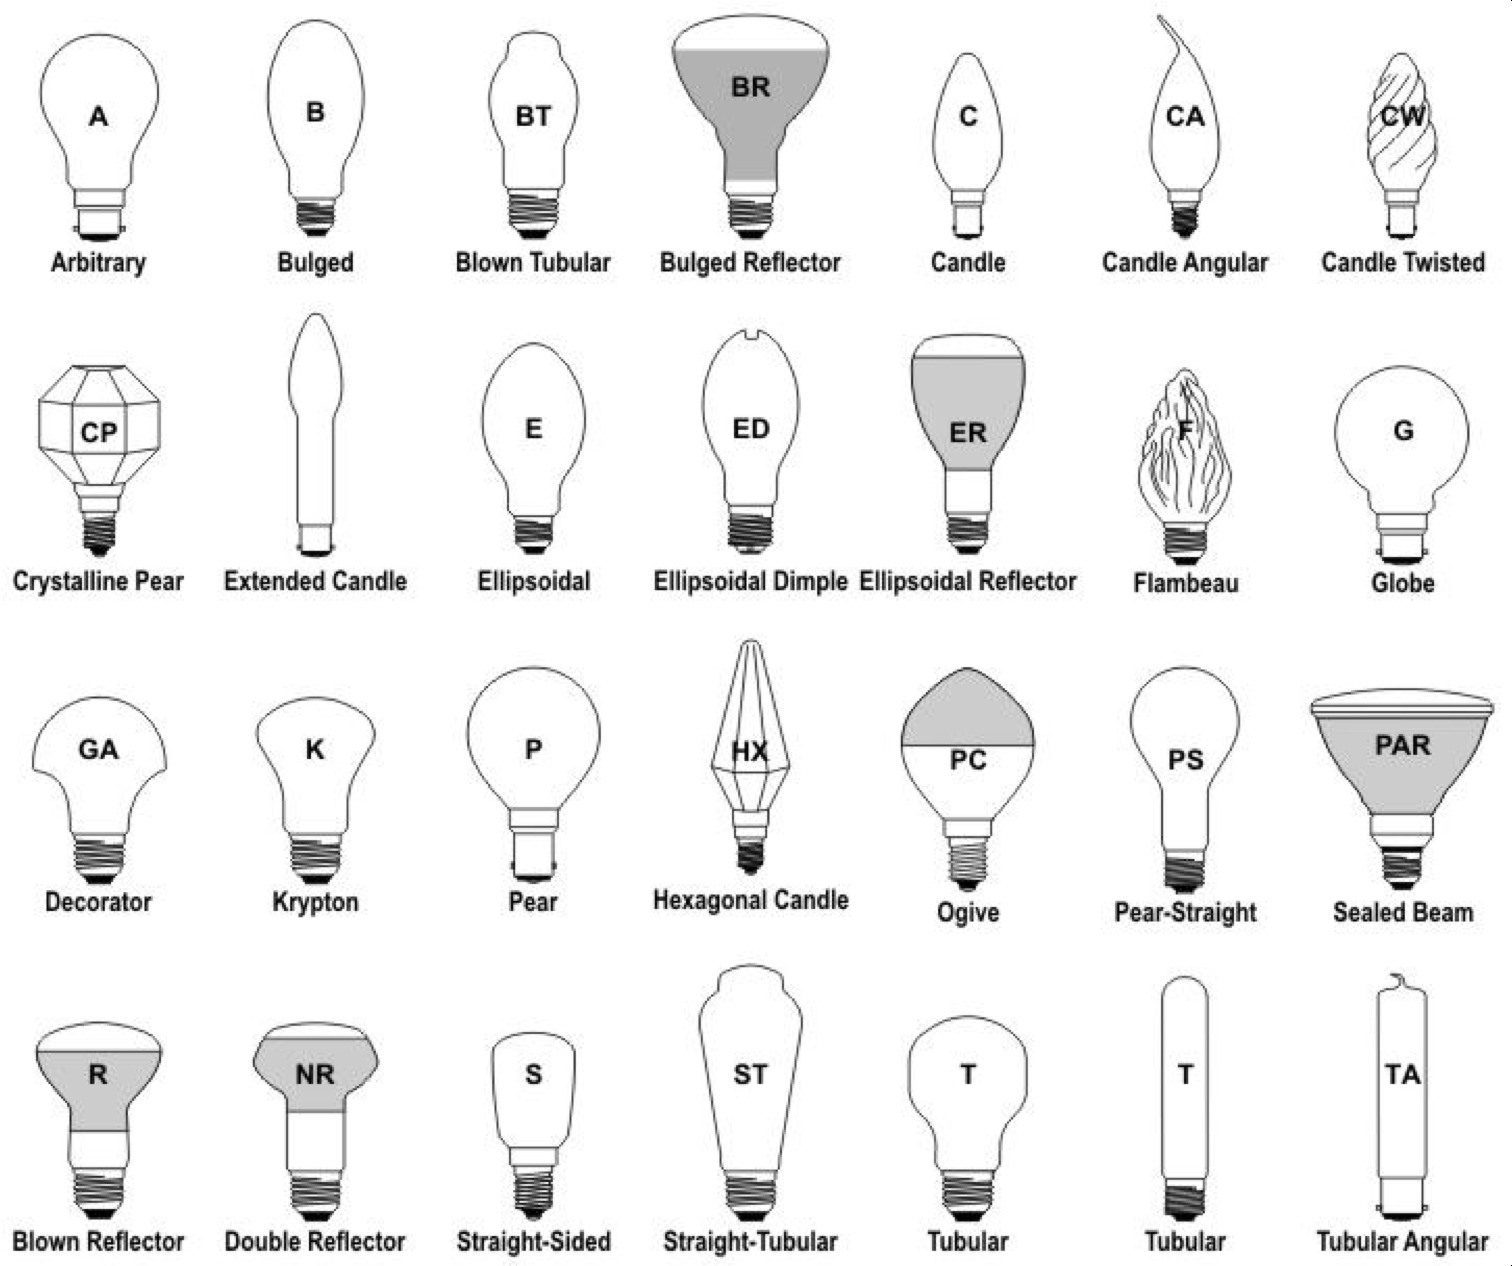 Naming Conventions For Light Bulb Shapes Made In China